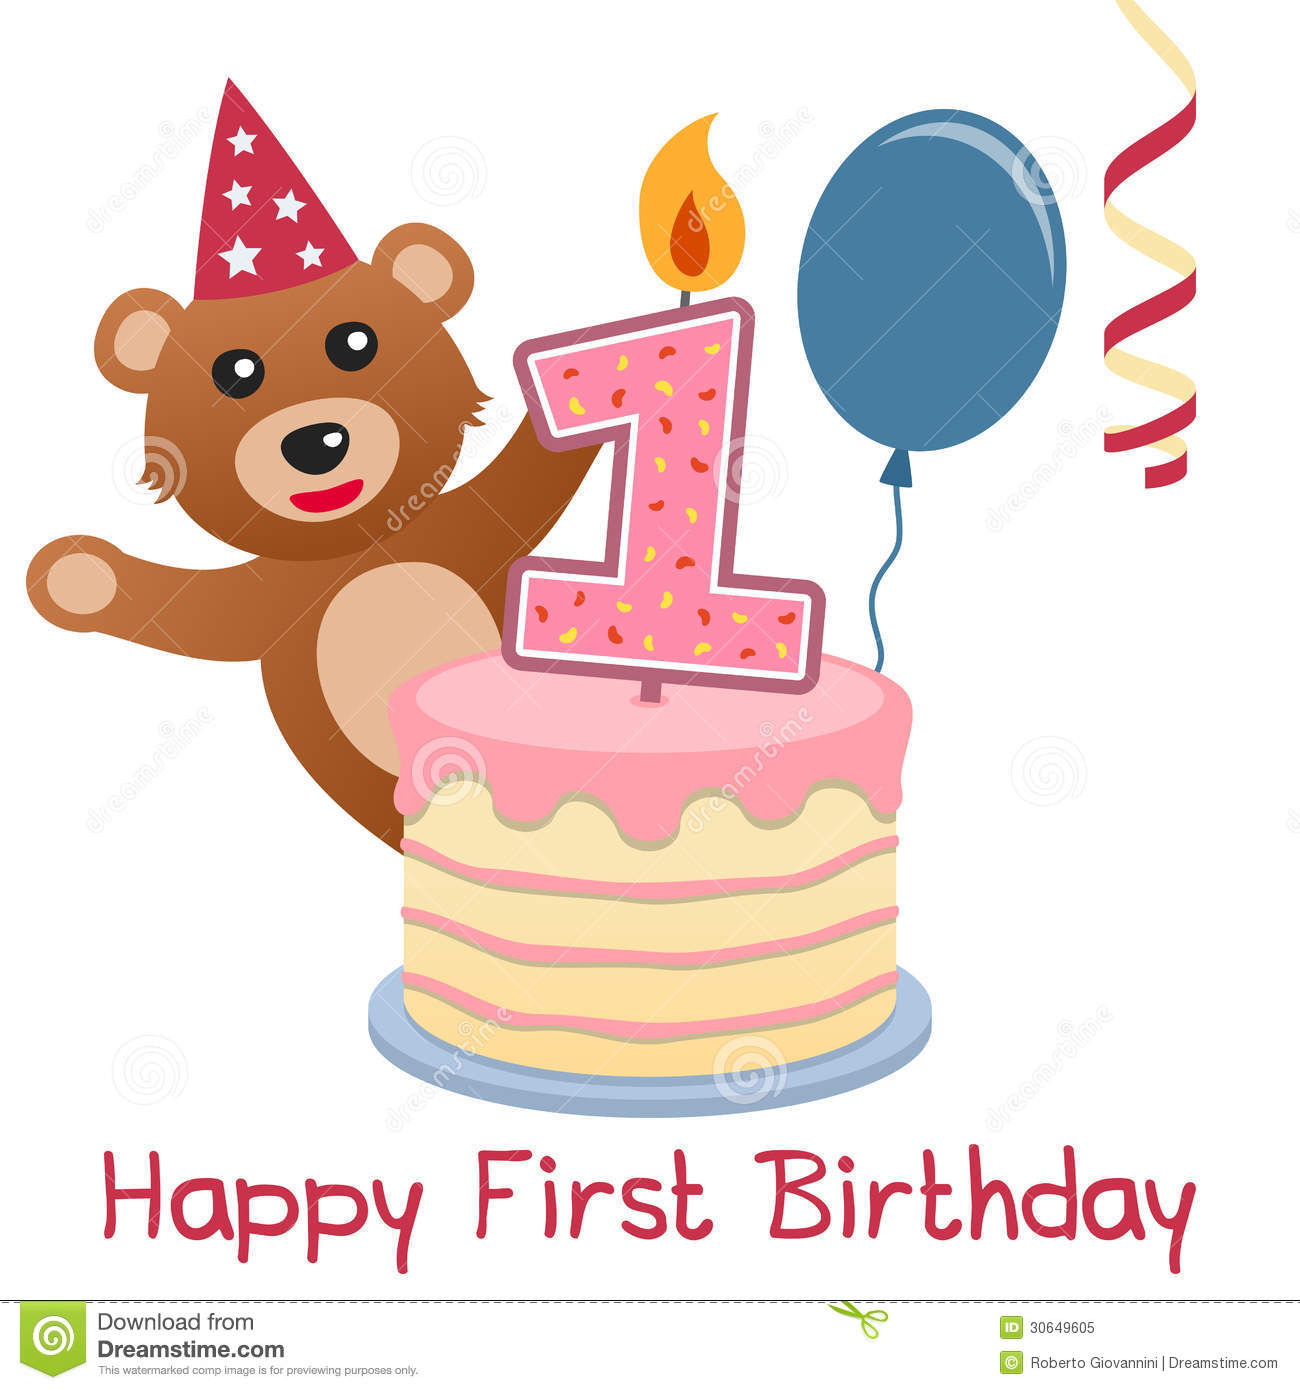 first birthday cake clipart ; first-birthday-teddy-bear-happy-greeting-card-cute-cake-numbered-candle-blue-balloon-red-streamer-30649605